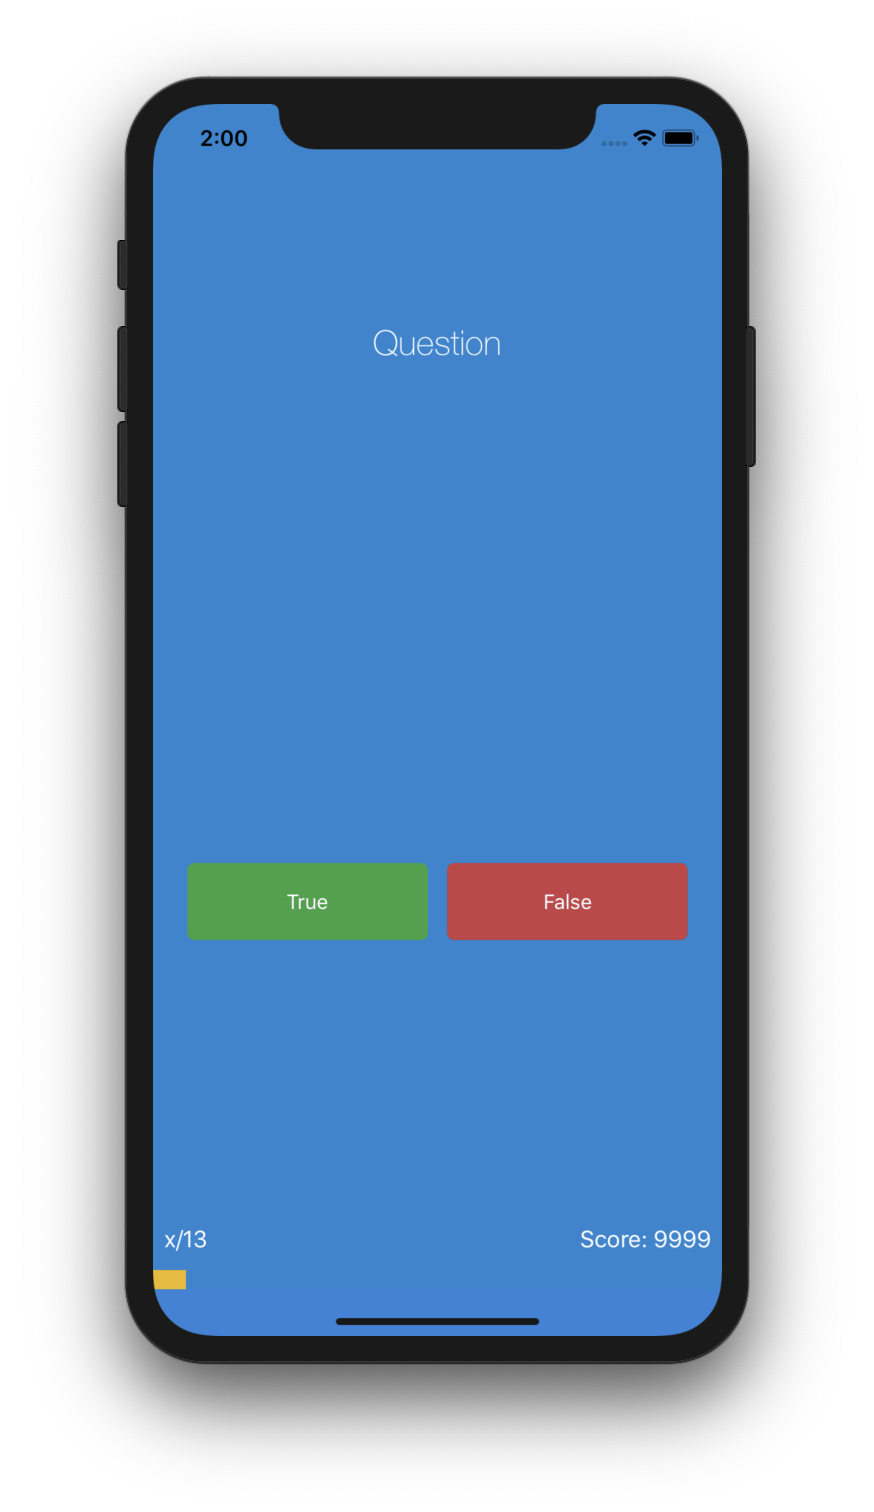 Quizer - A single page application that asks you questions, counts your score and shows you your progress in the progress bar